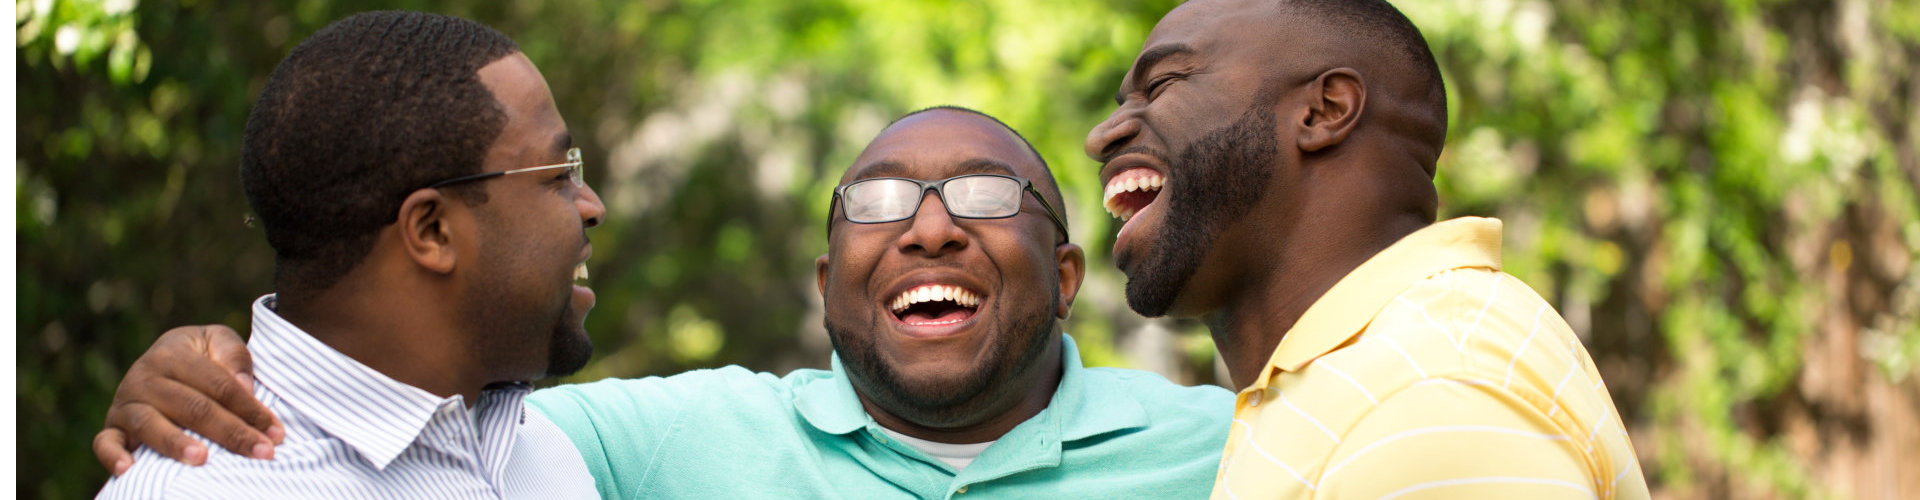 brothers laughing and having fun